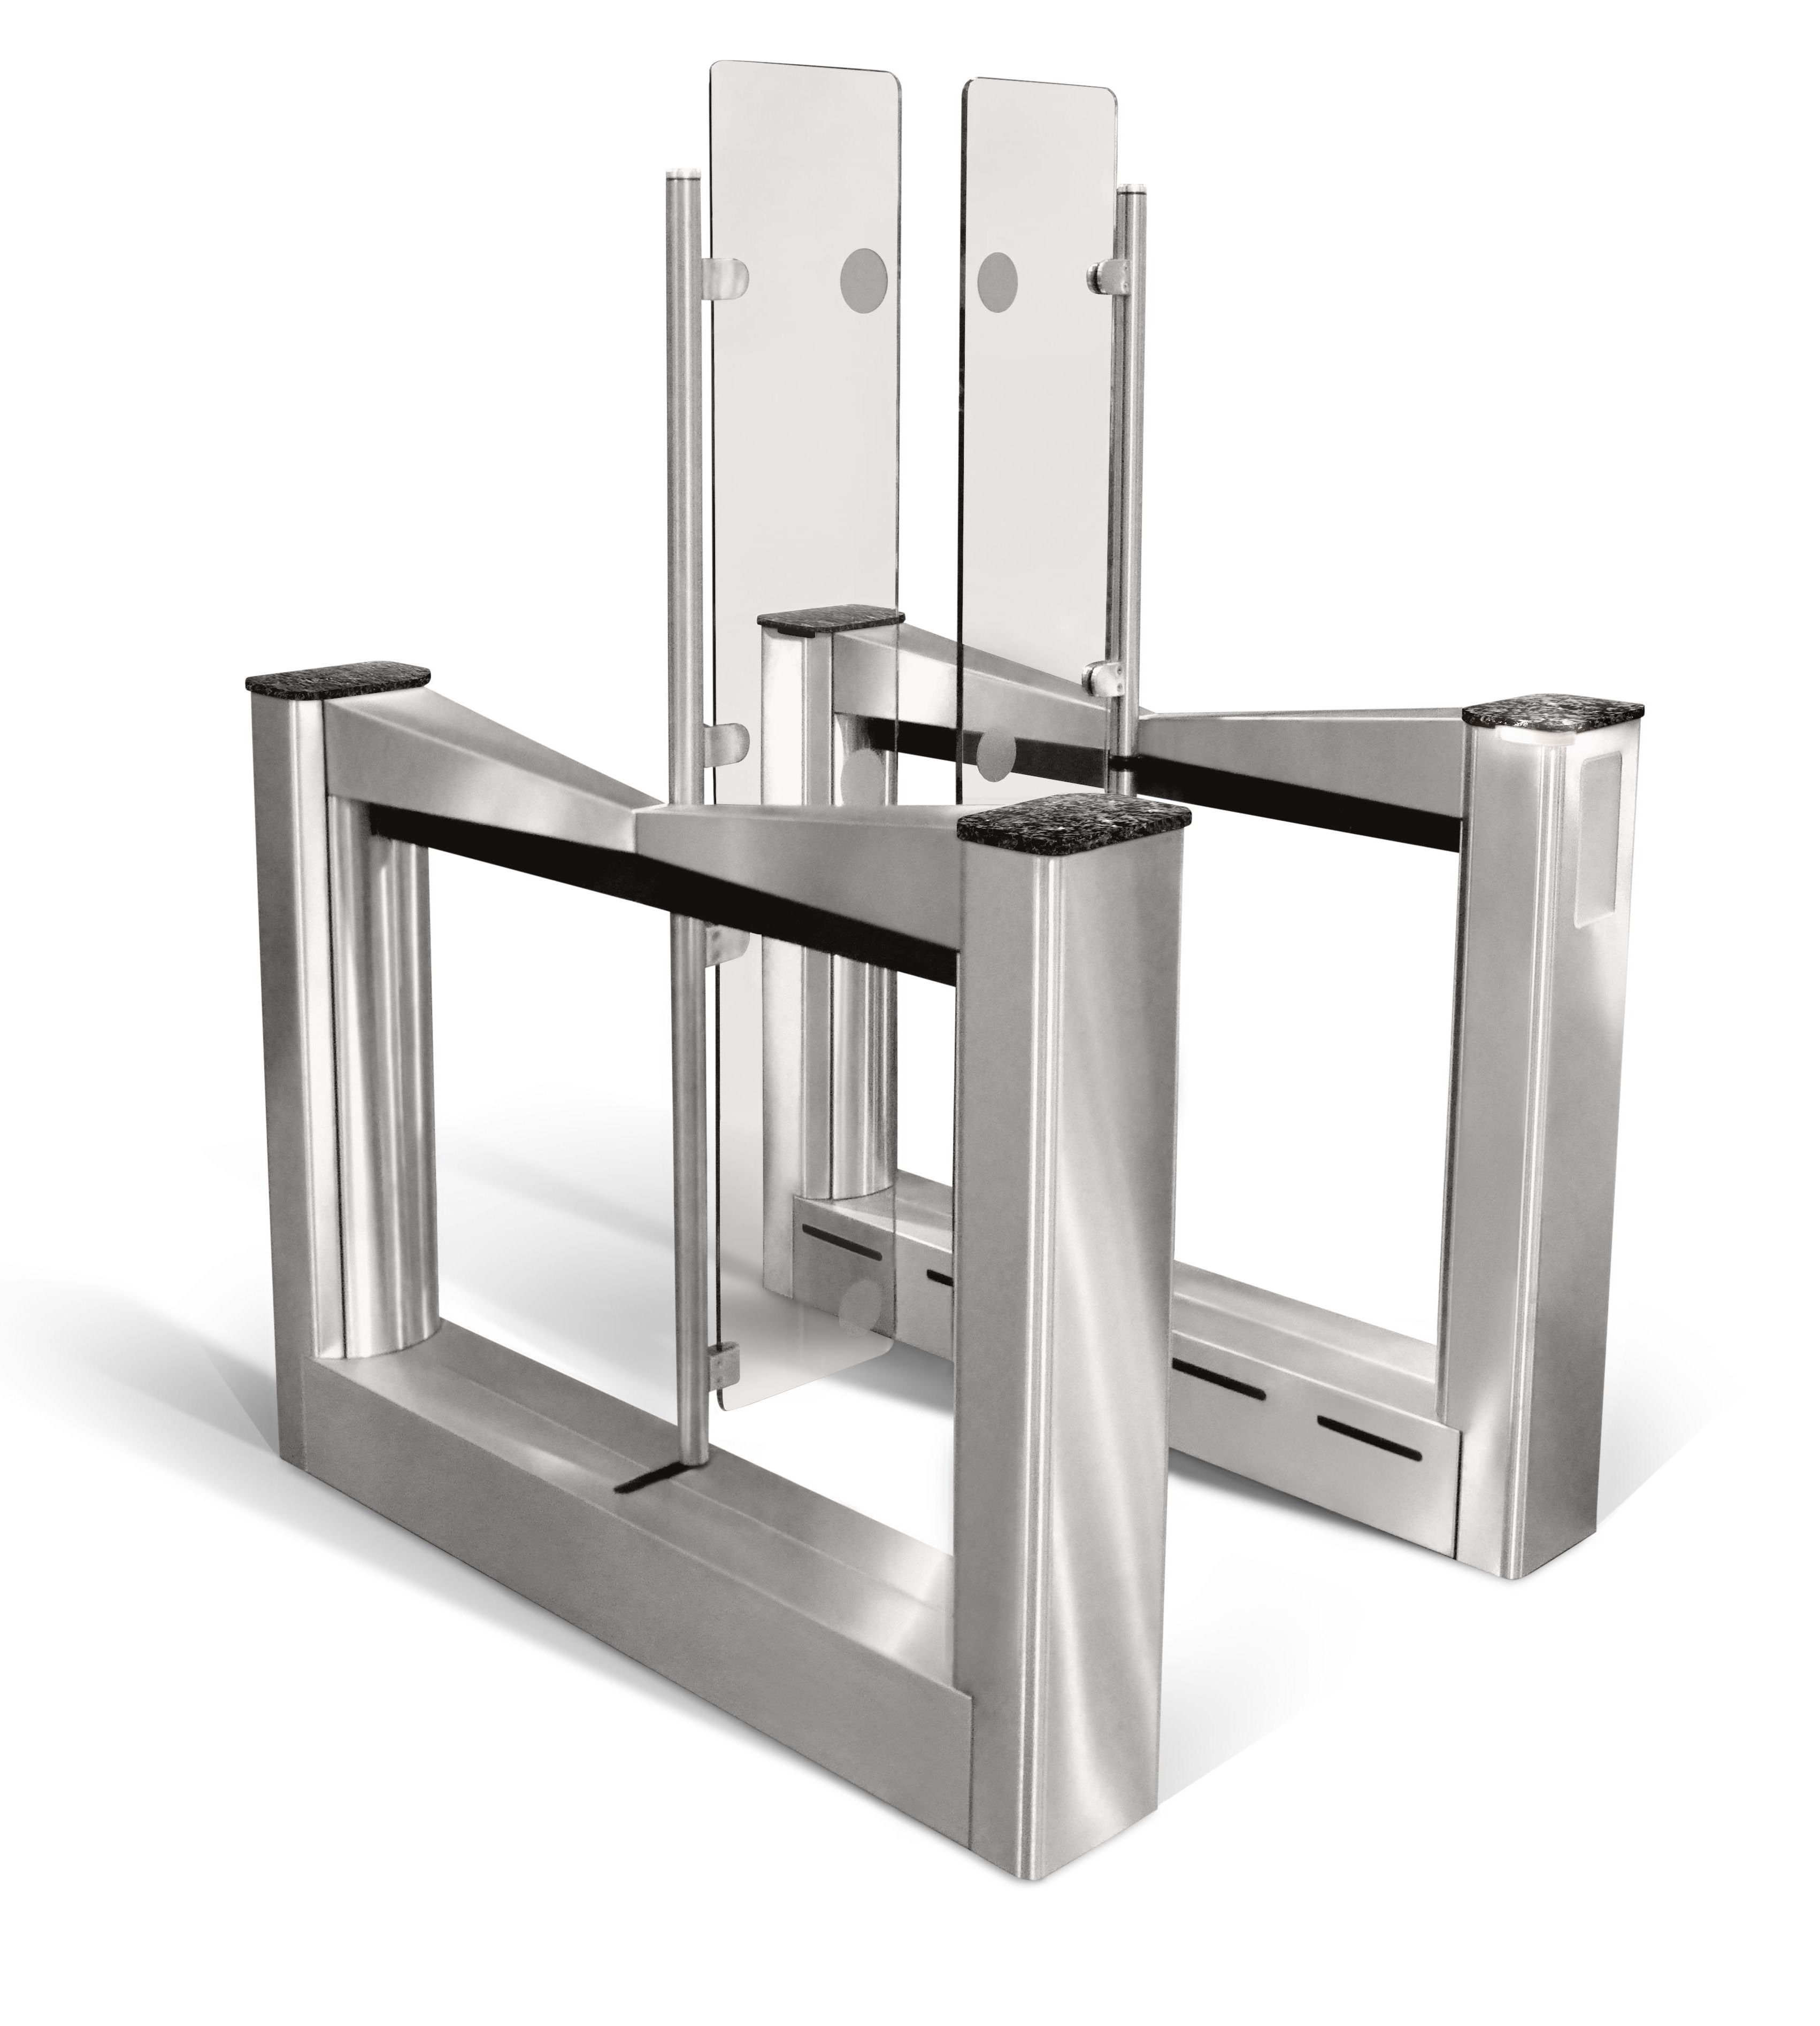 Security Turnstiles From Smarter Security Improve Entry